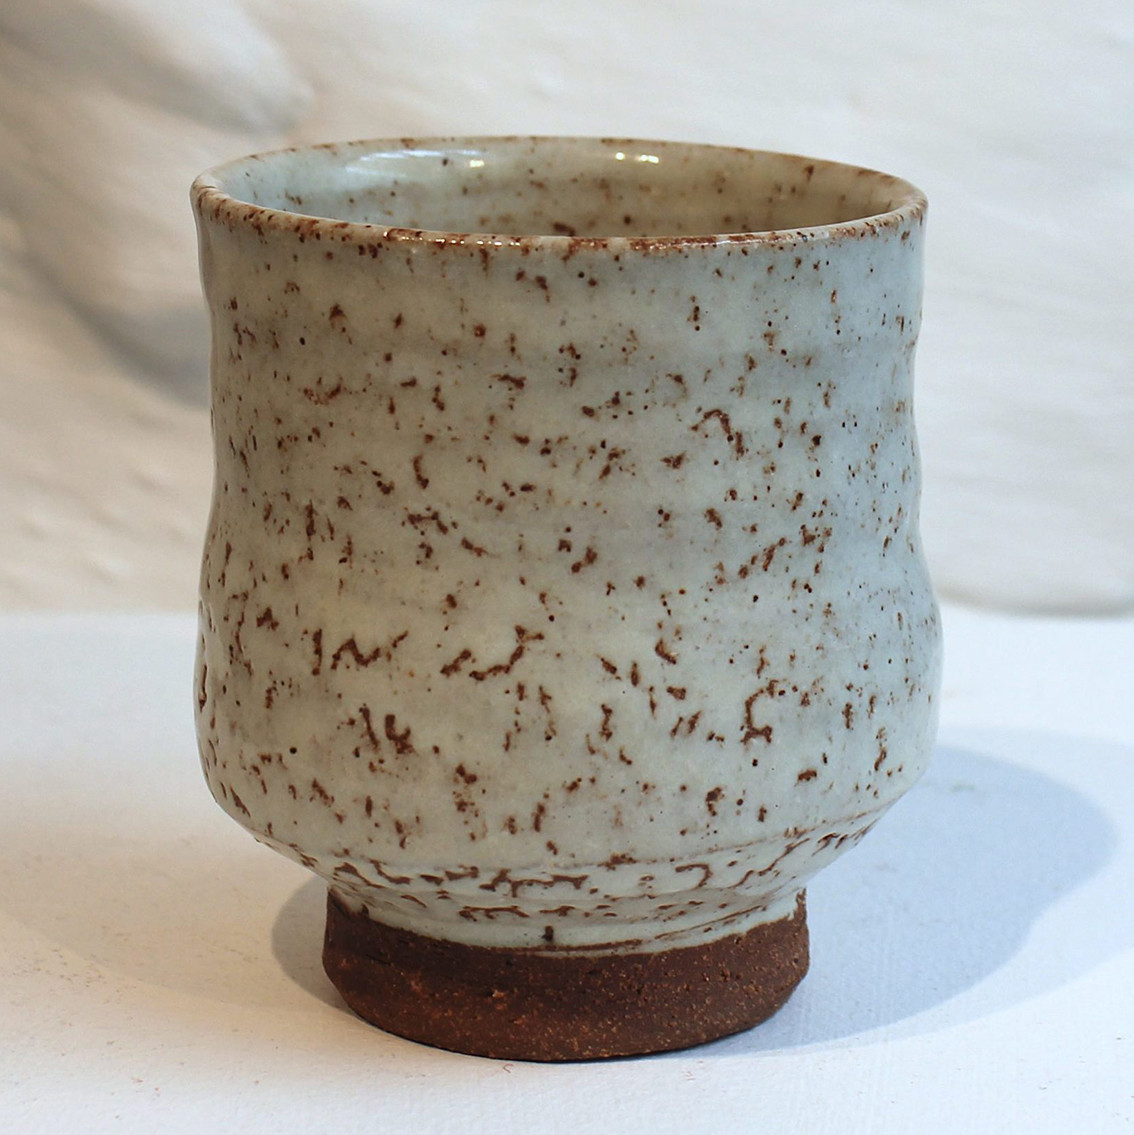 "<span class=""link fancybox-details-link""><a href=""/artists/200-matthew-tyas/works/5461-matthew-tyas-tenmoku-shino-glaze-yunomi-2018/"">View Detail Page</a></span><div class=""artist""><strong>Matthew Tyas</strong></div> <div class=""title""><em>Tenmoku Shino Glaze Yunomi</em>, 2018</div> <div class=""signed_and_dated"">stamped by the artist</div> <div class=""medium"">glazed thrown stoneware</div><div class=""copyright_line"">Copyright The Artist</div>"